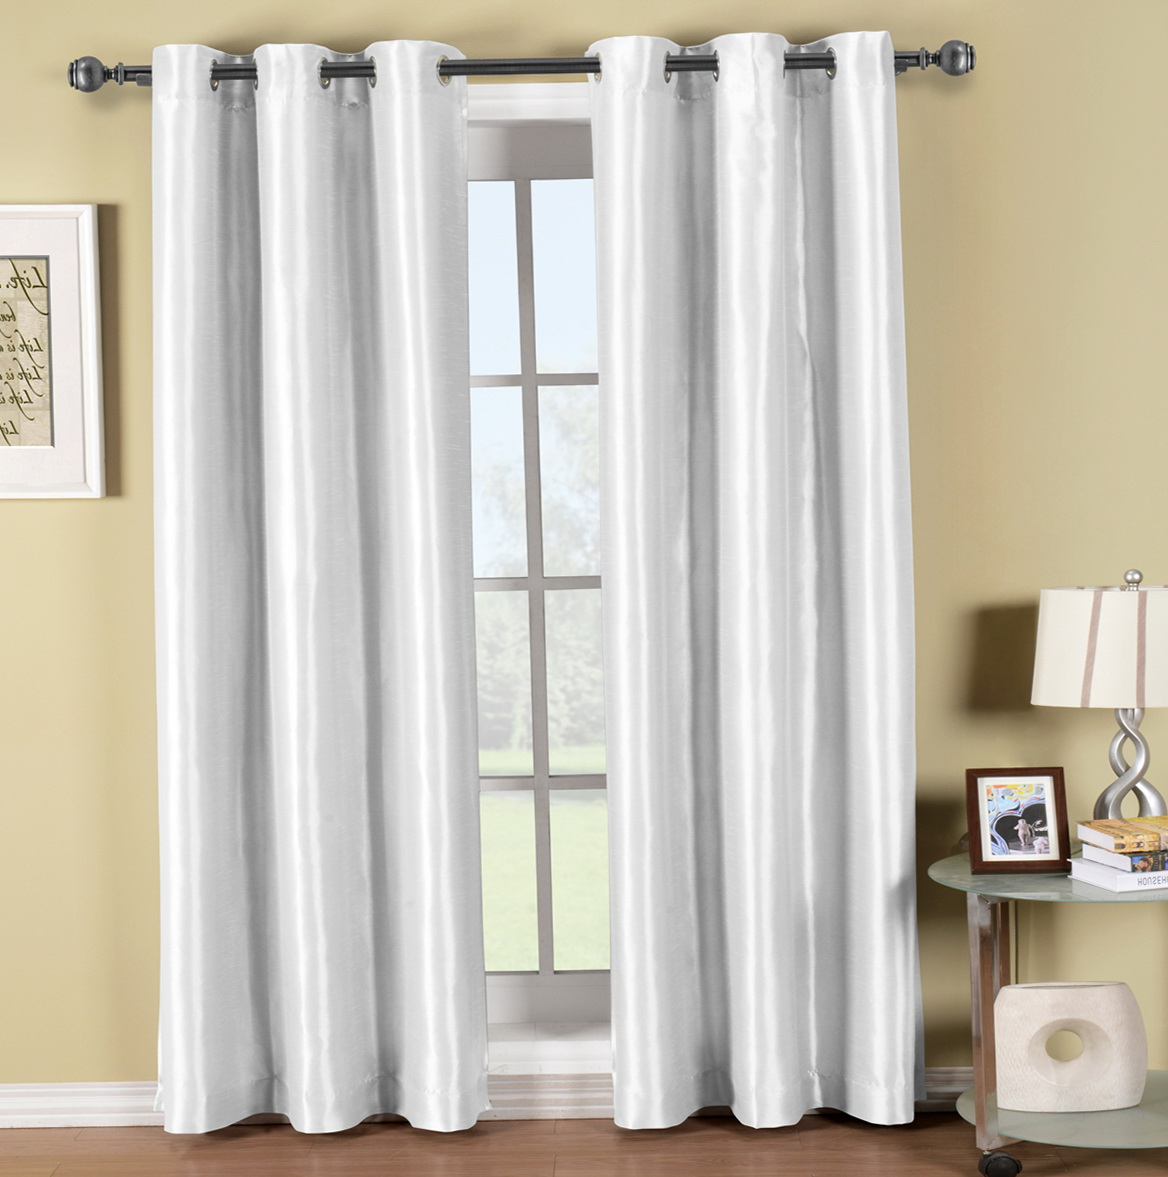 White Thermal Curtains 84 Home Design Ideas